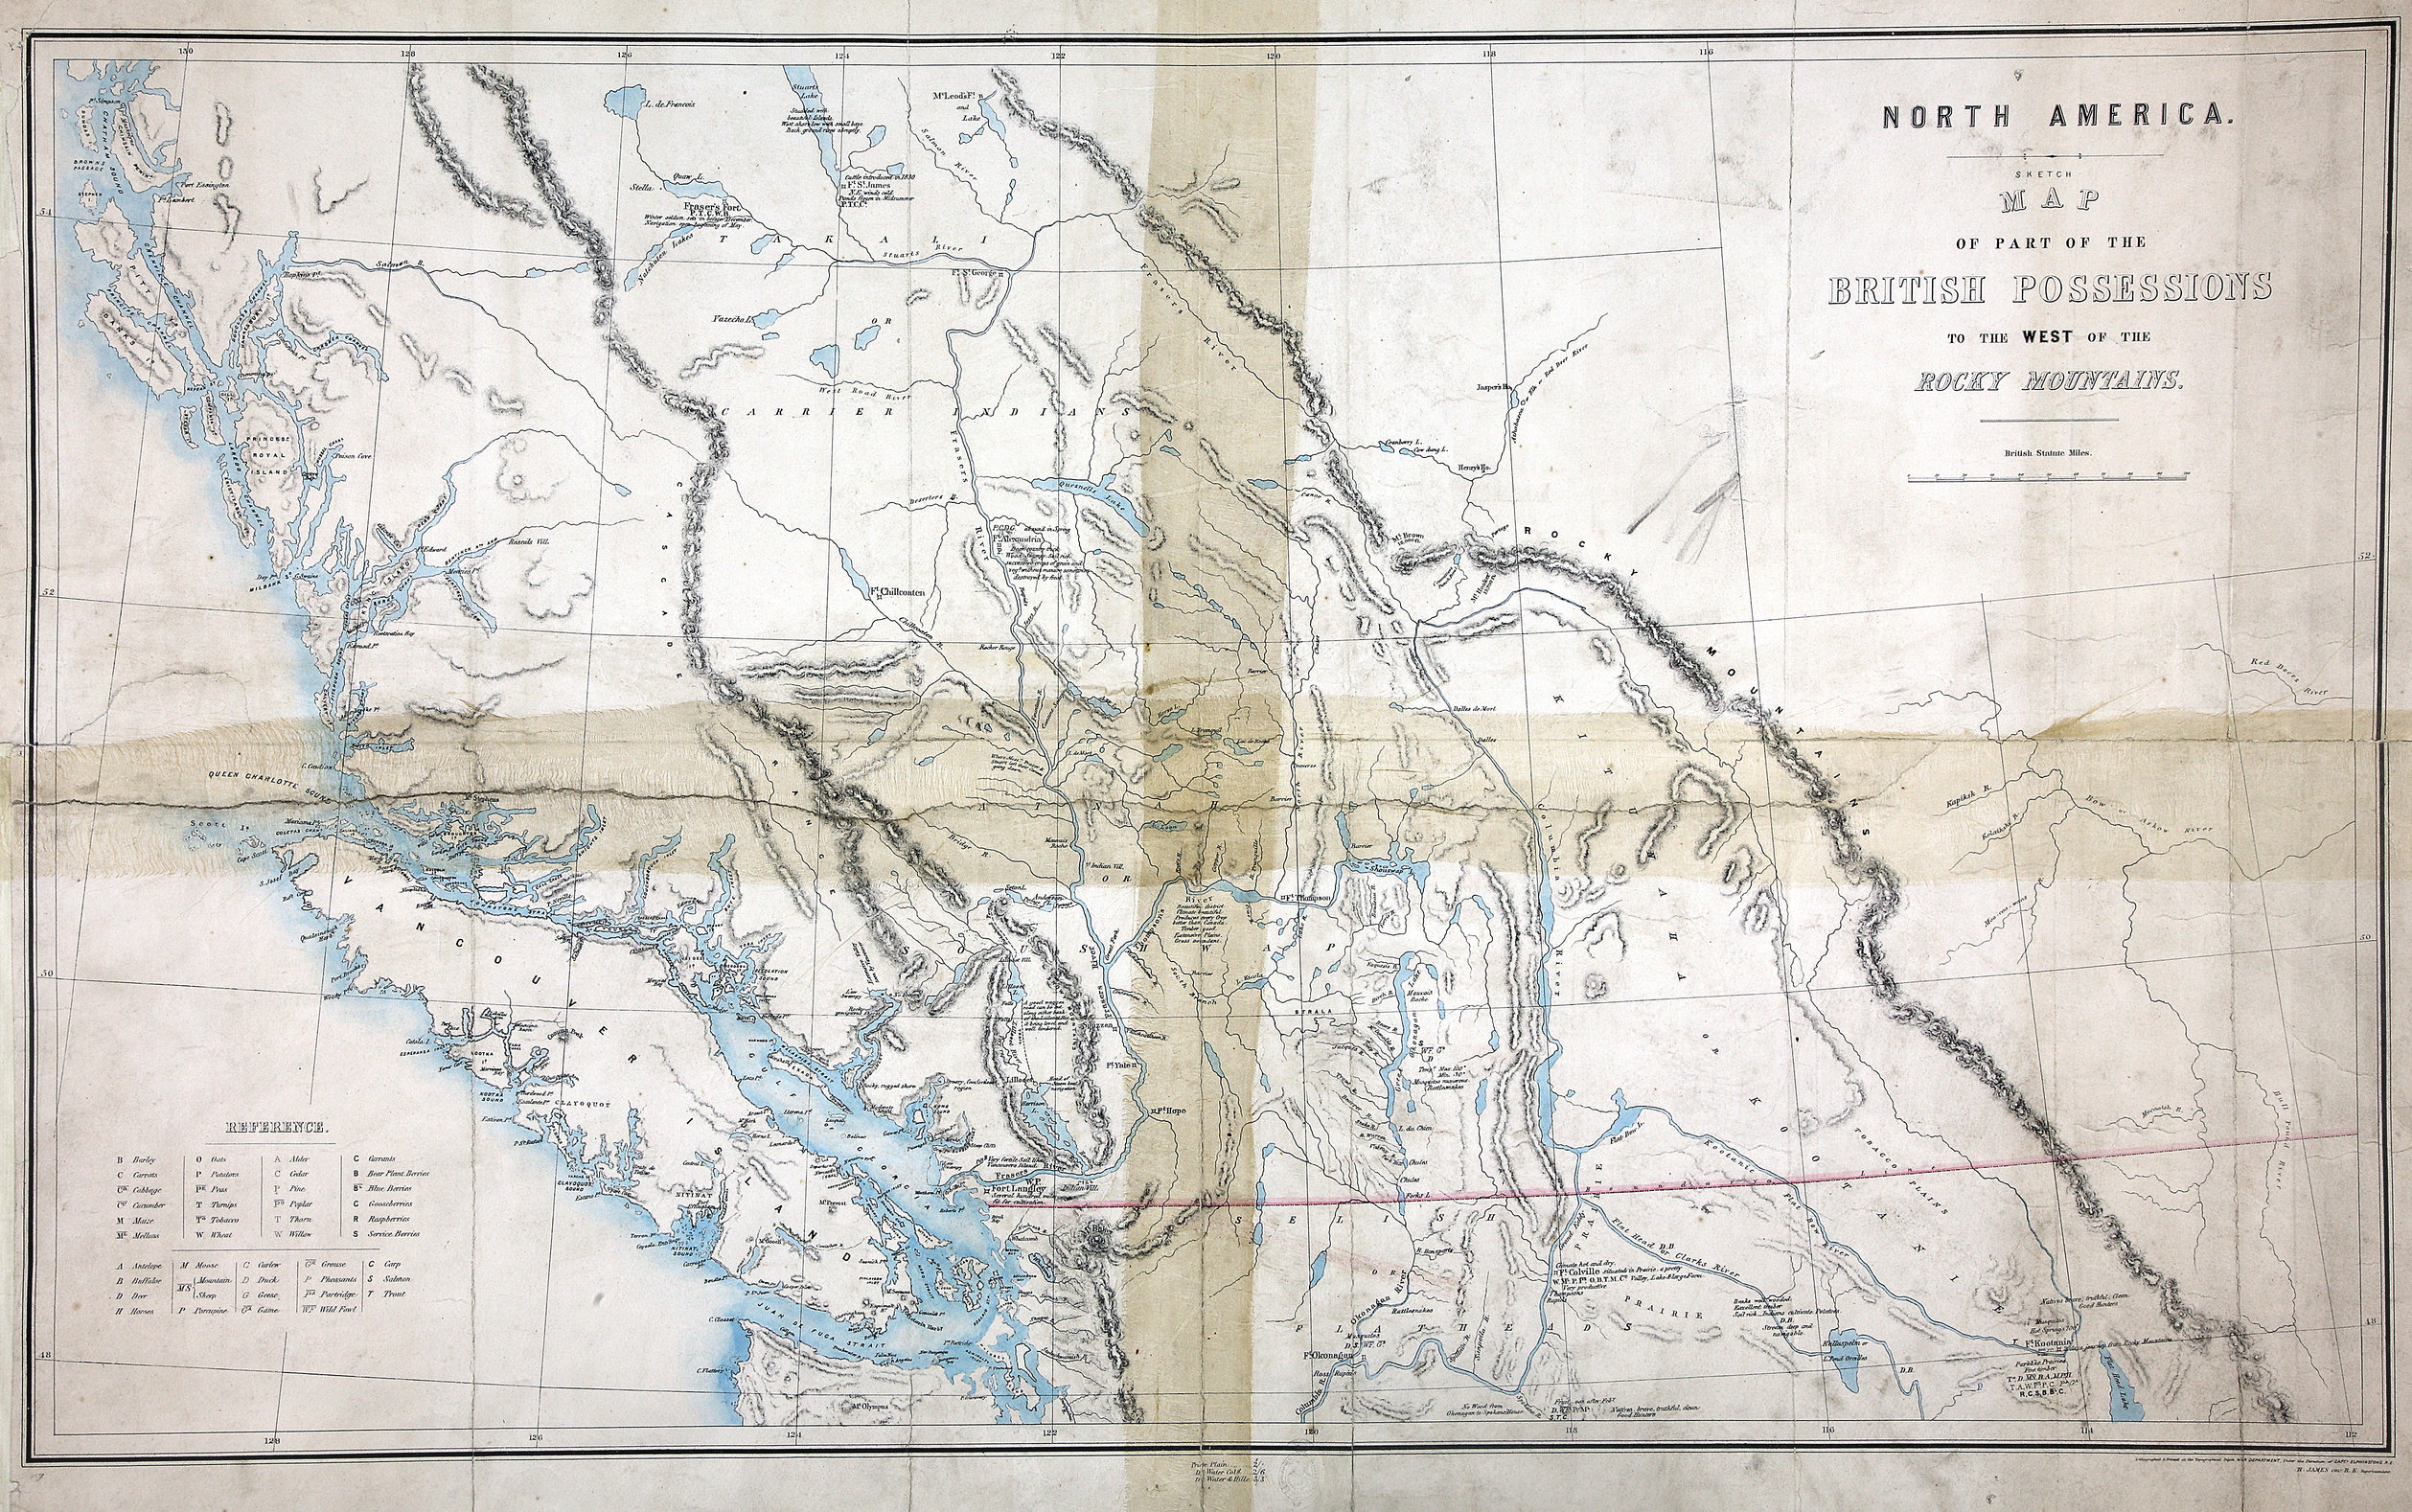 Sketch map of part of the British possessions to the west of the Rocky Mountains.